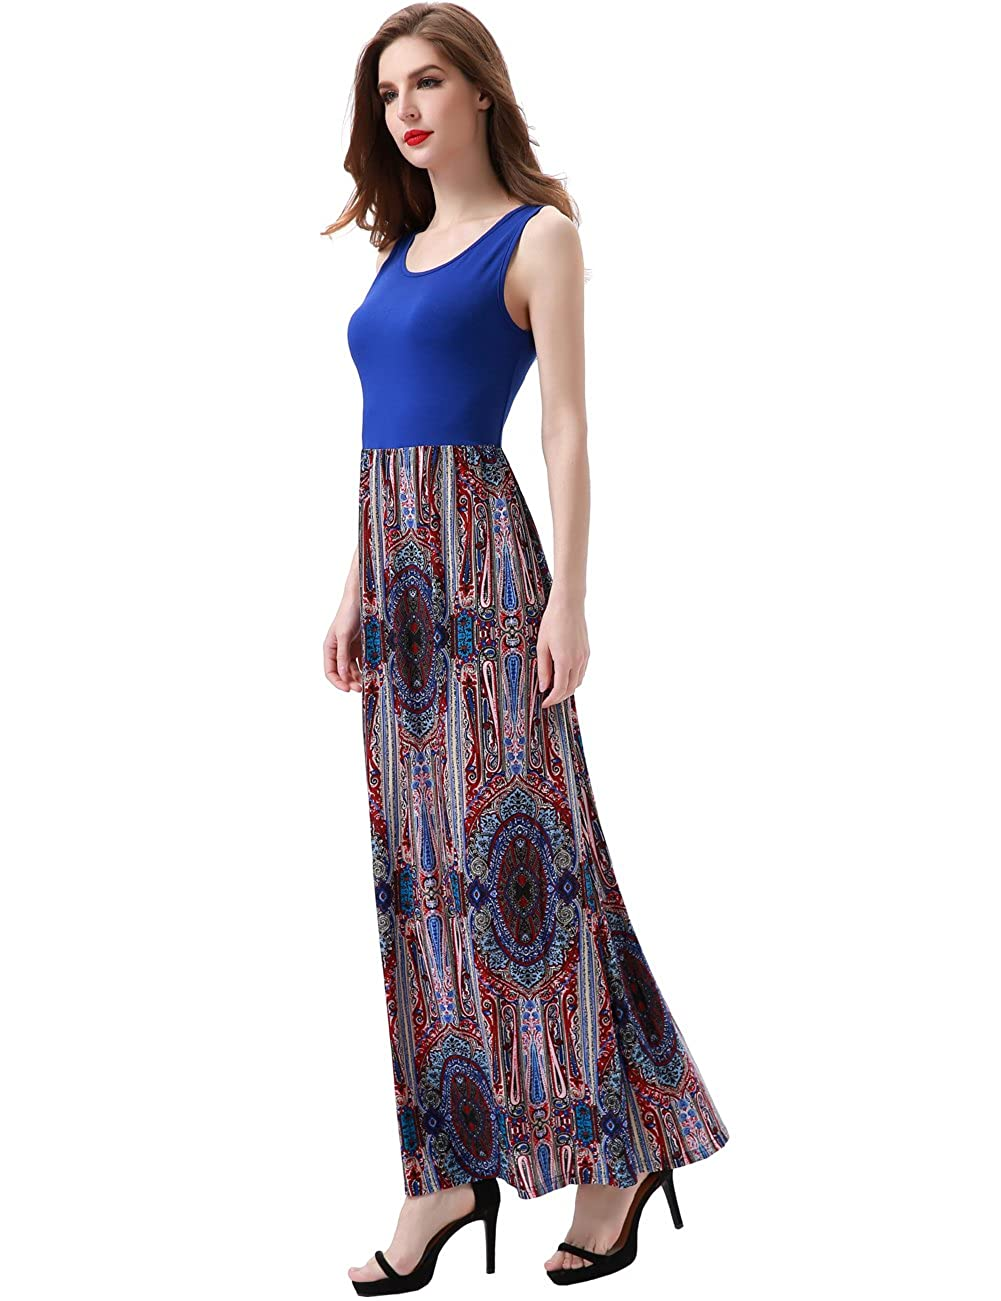 d5c4ee9c5a7 Aphratti Women s Bohemian Sleeveless Casual Long Tank Maxi Summer Sun  Dresses at Amazon Women s Clothing store